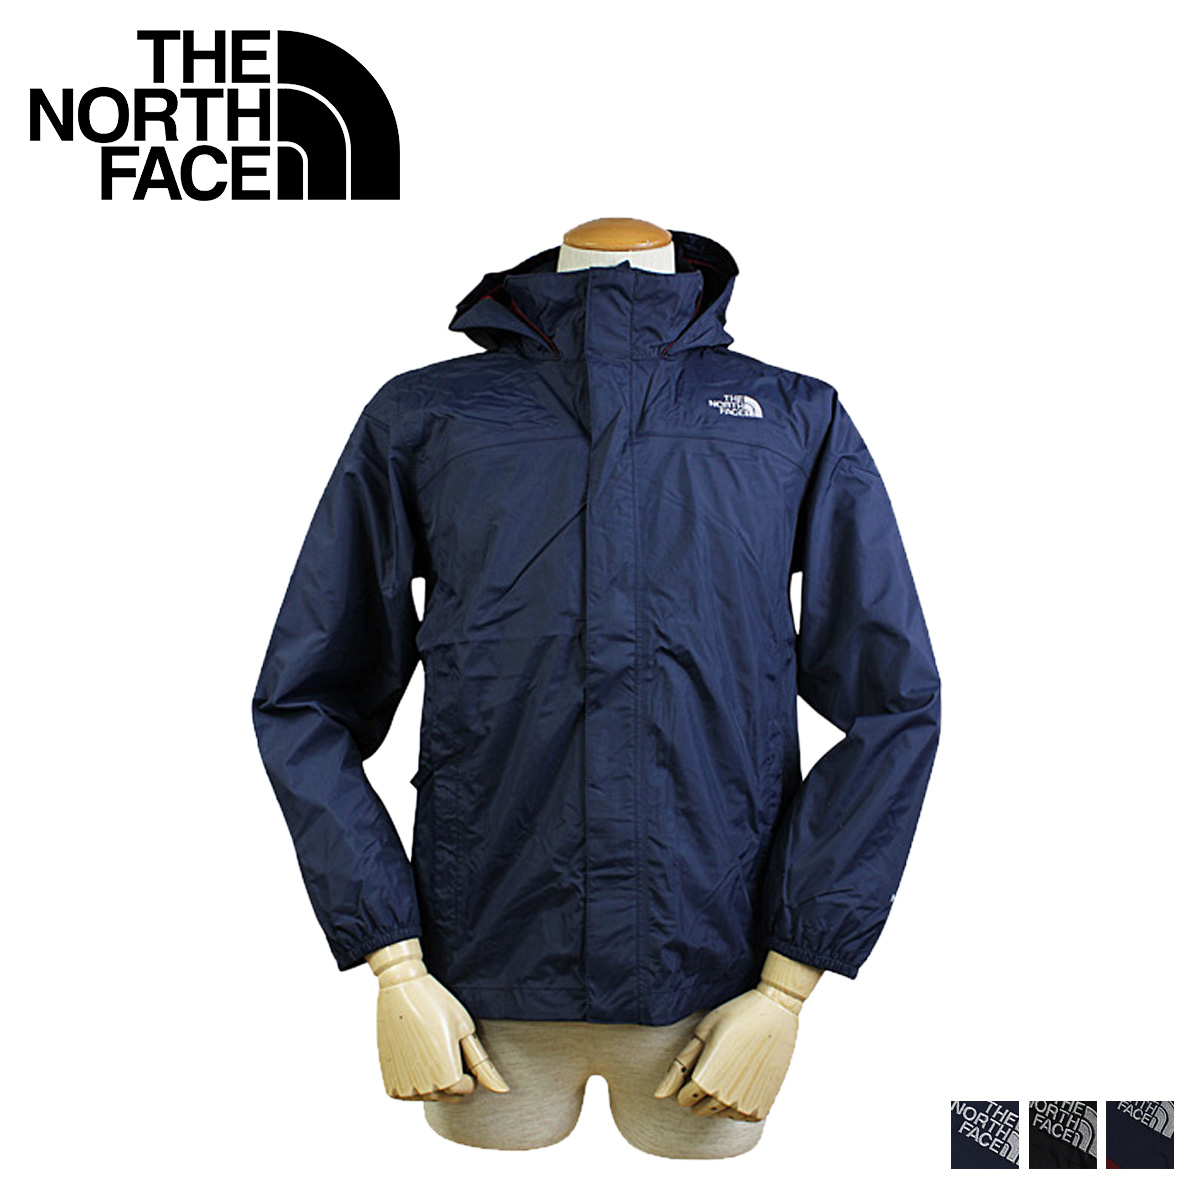 ALLSPORTS   SOLD OUT  the north face THE NORTH FACE kids women s zip up  jacket 3 colors AQFY BOYS   RESOLVE JACKET-men s  regular   8196dc9c3